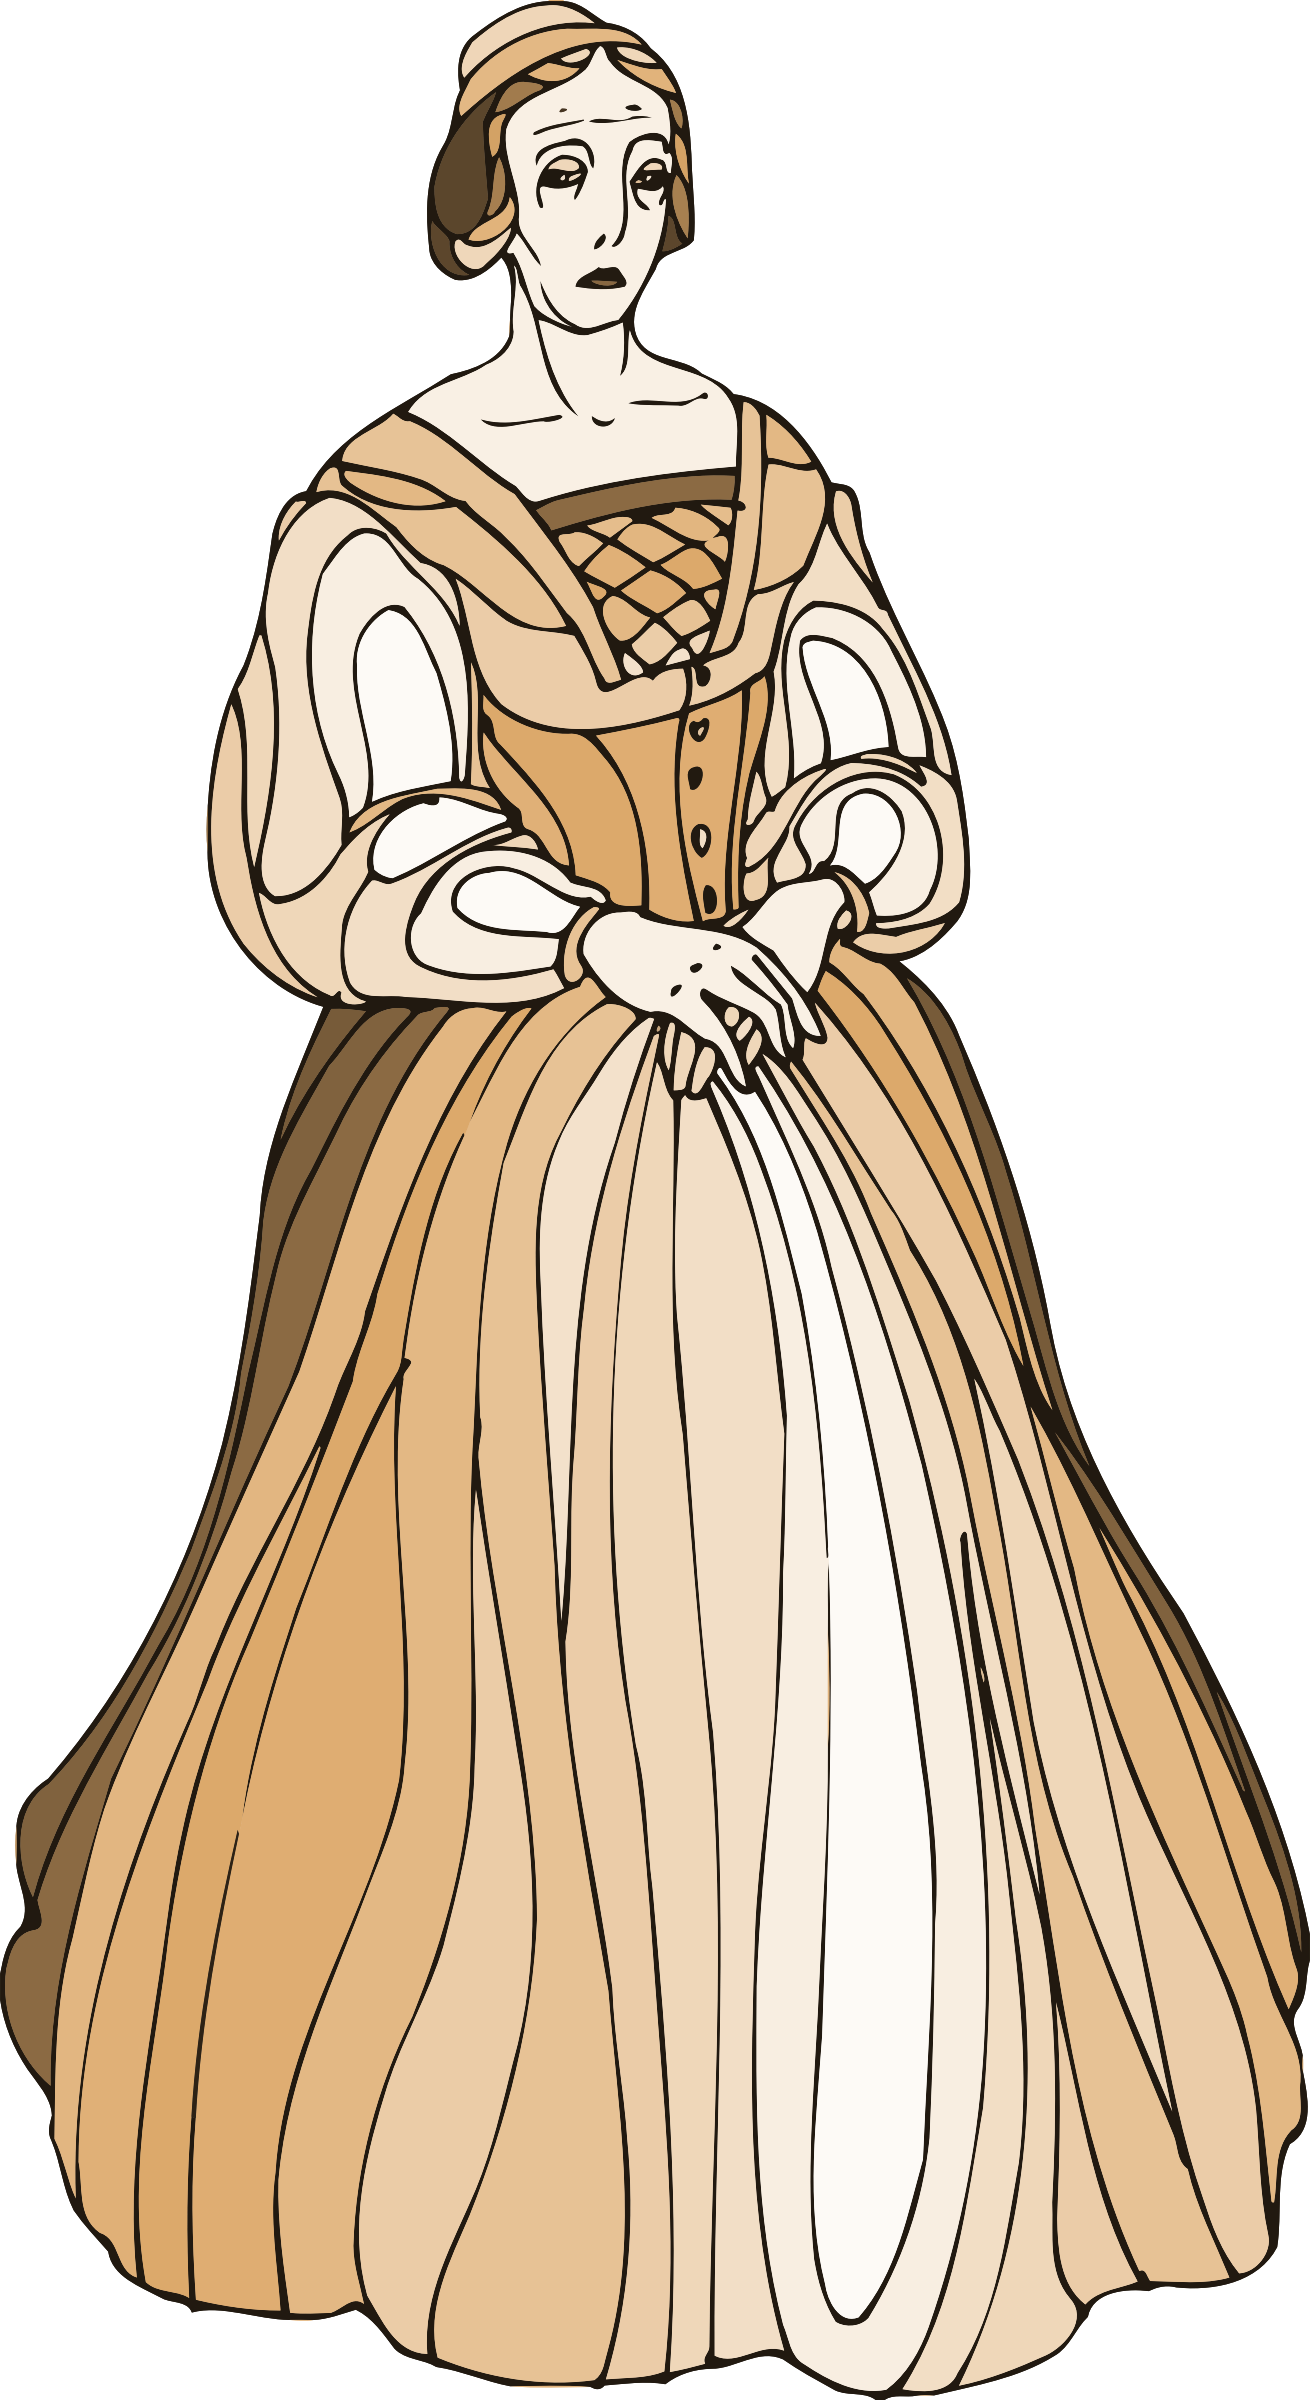 Shakespeare characters - Lady Montague by Firkin